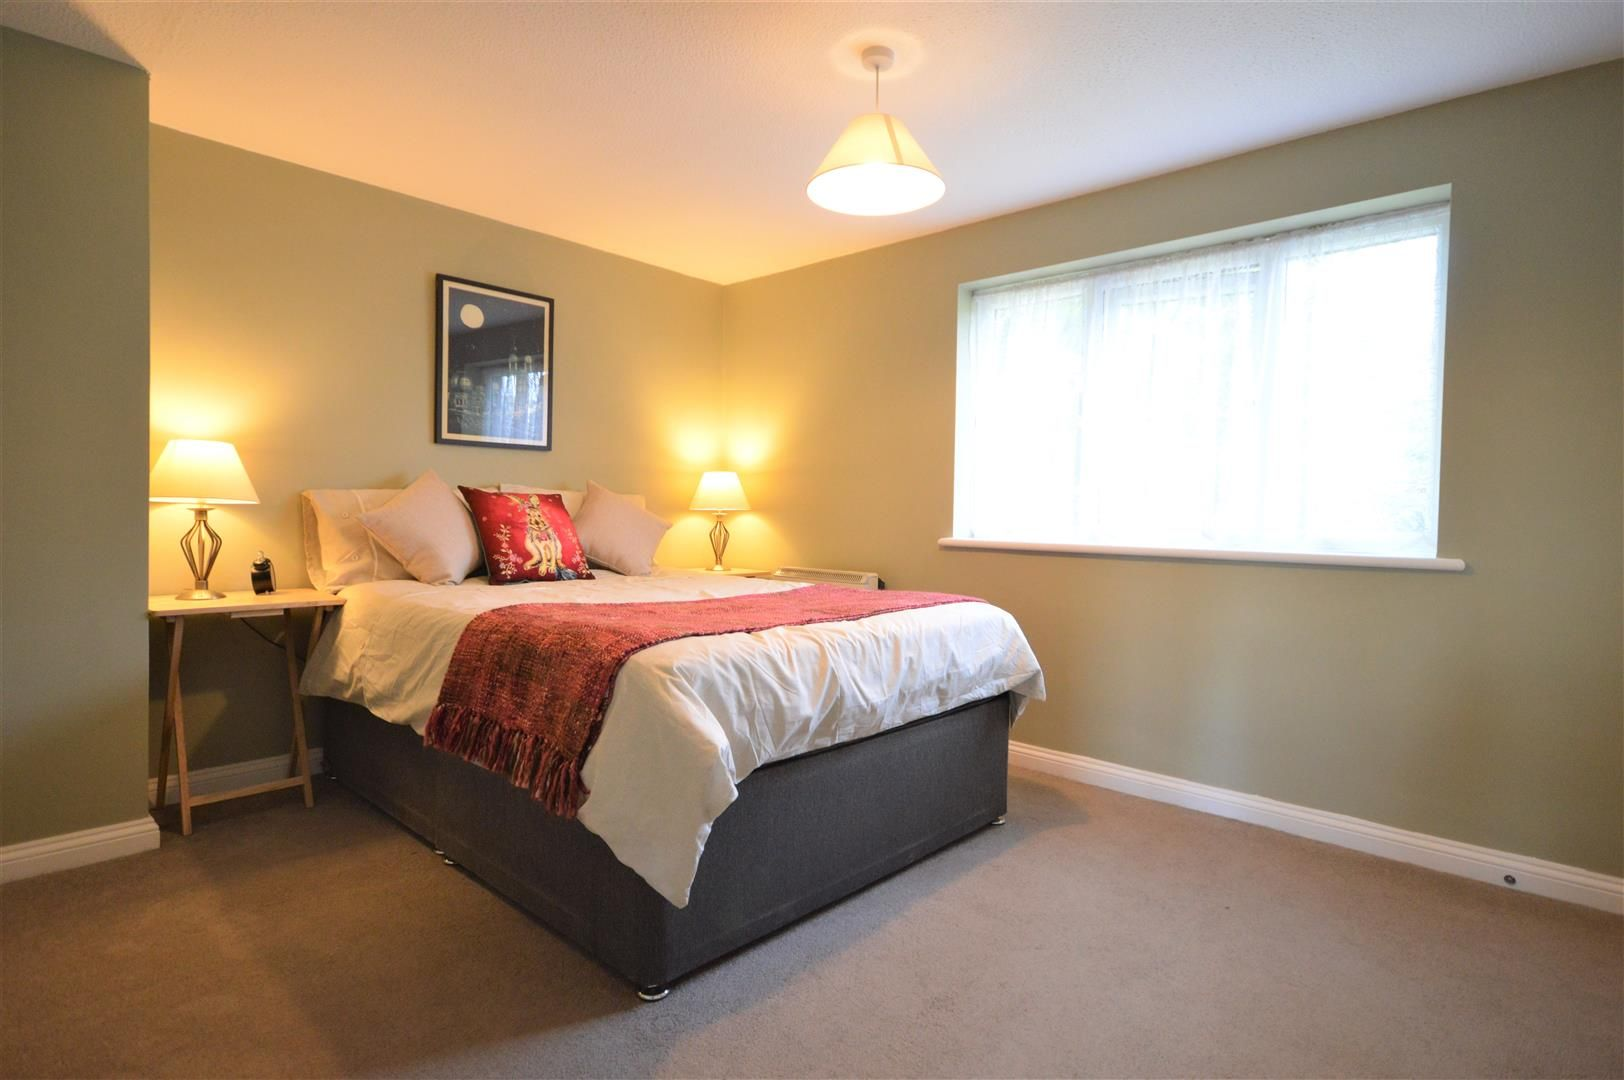 2 bed end-of-terrace for sale in Leominster 3